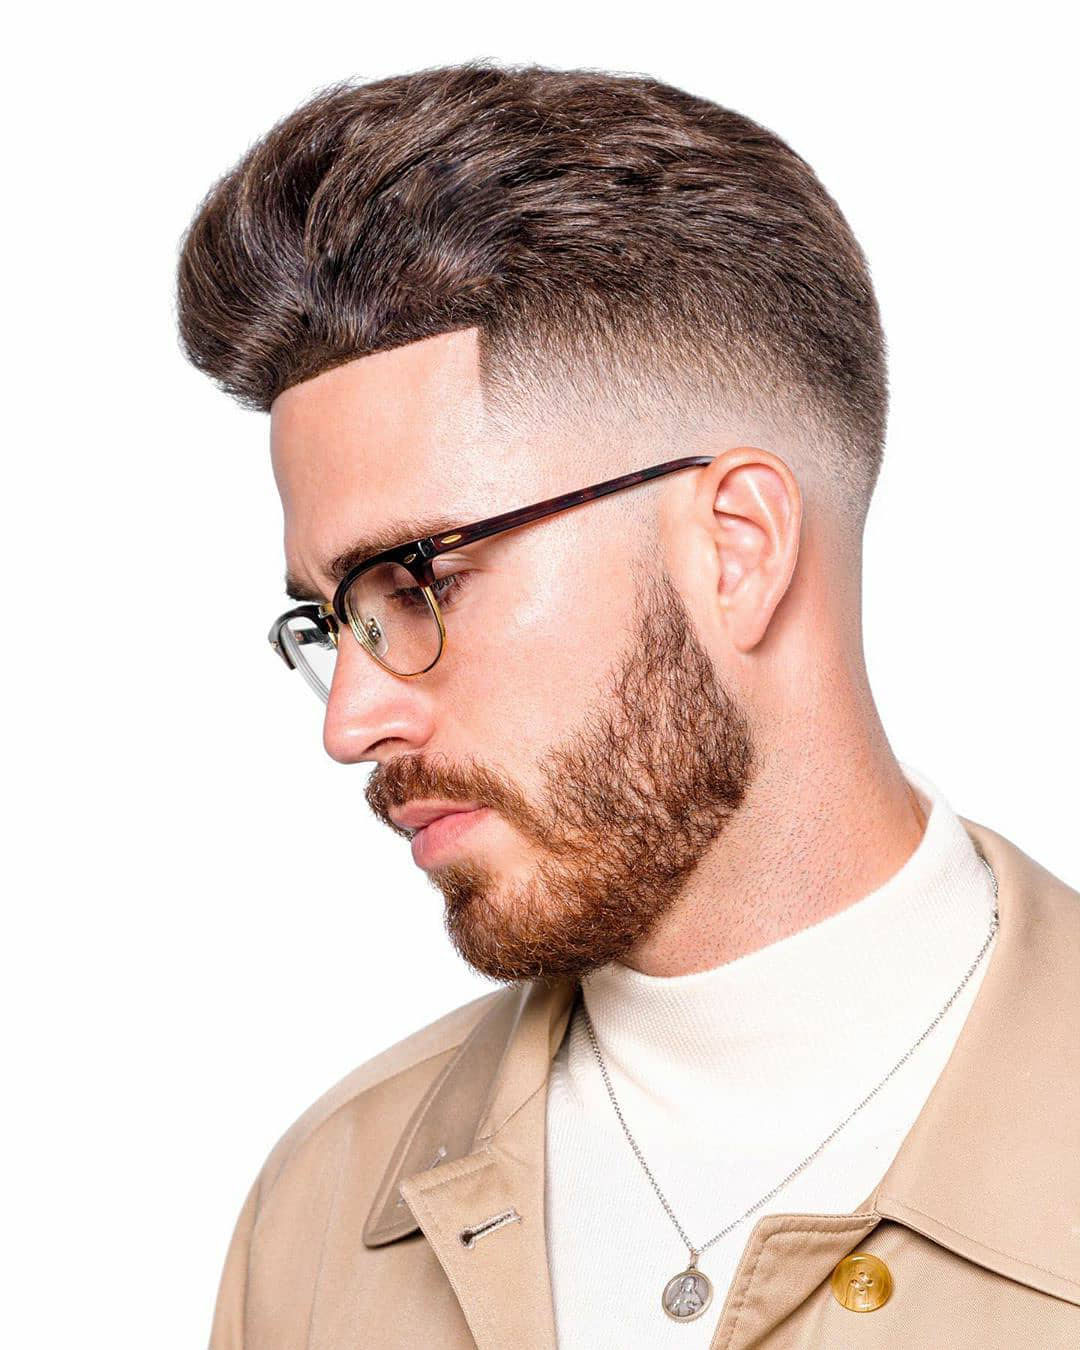 Pompadour Hairstyle with Full Beard